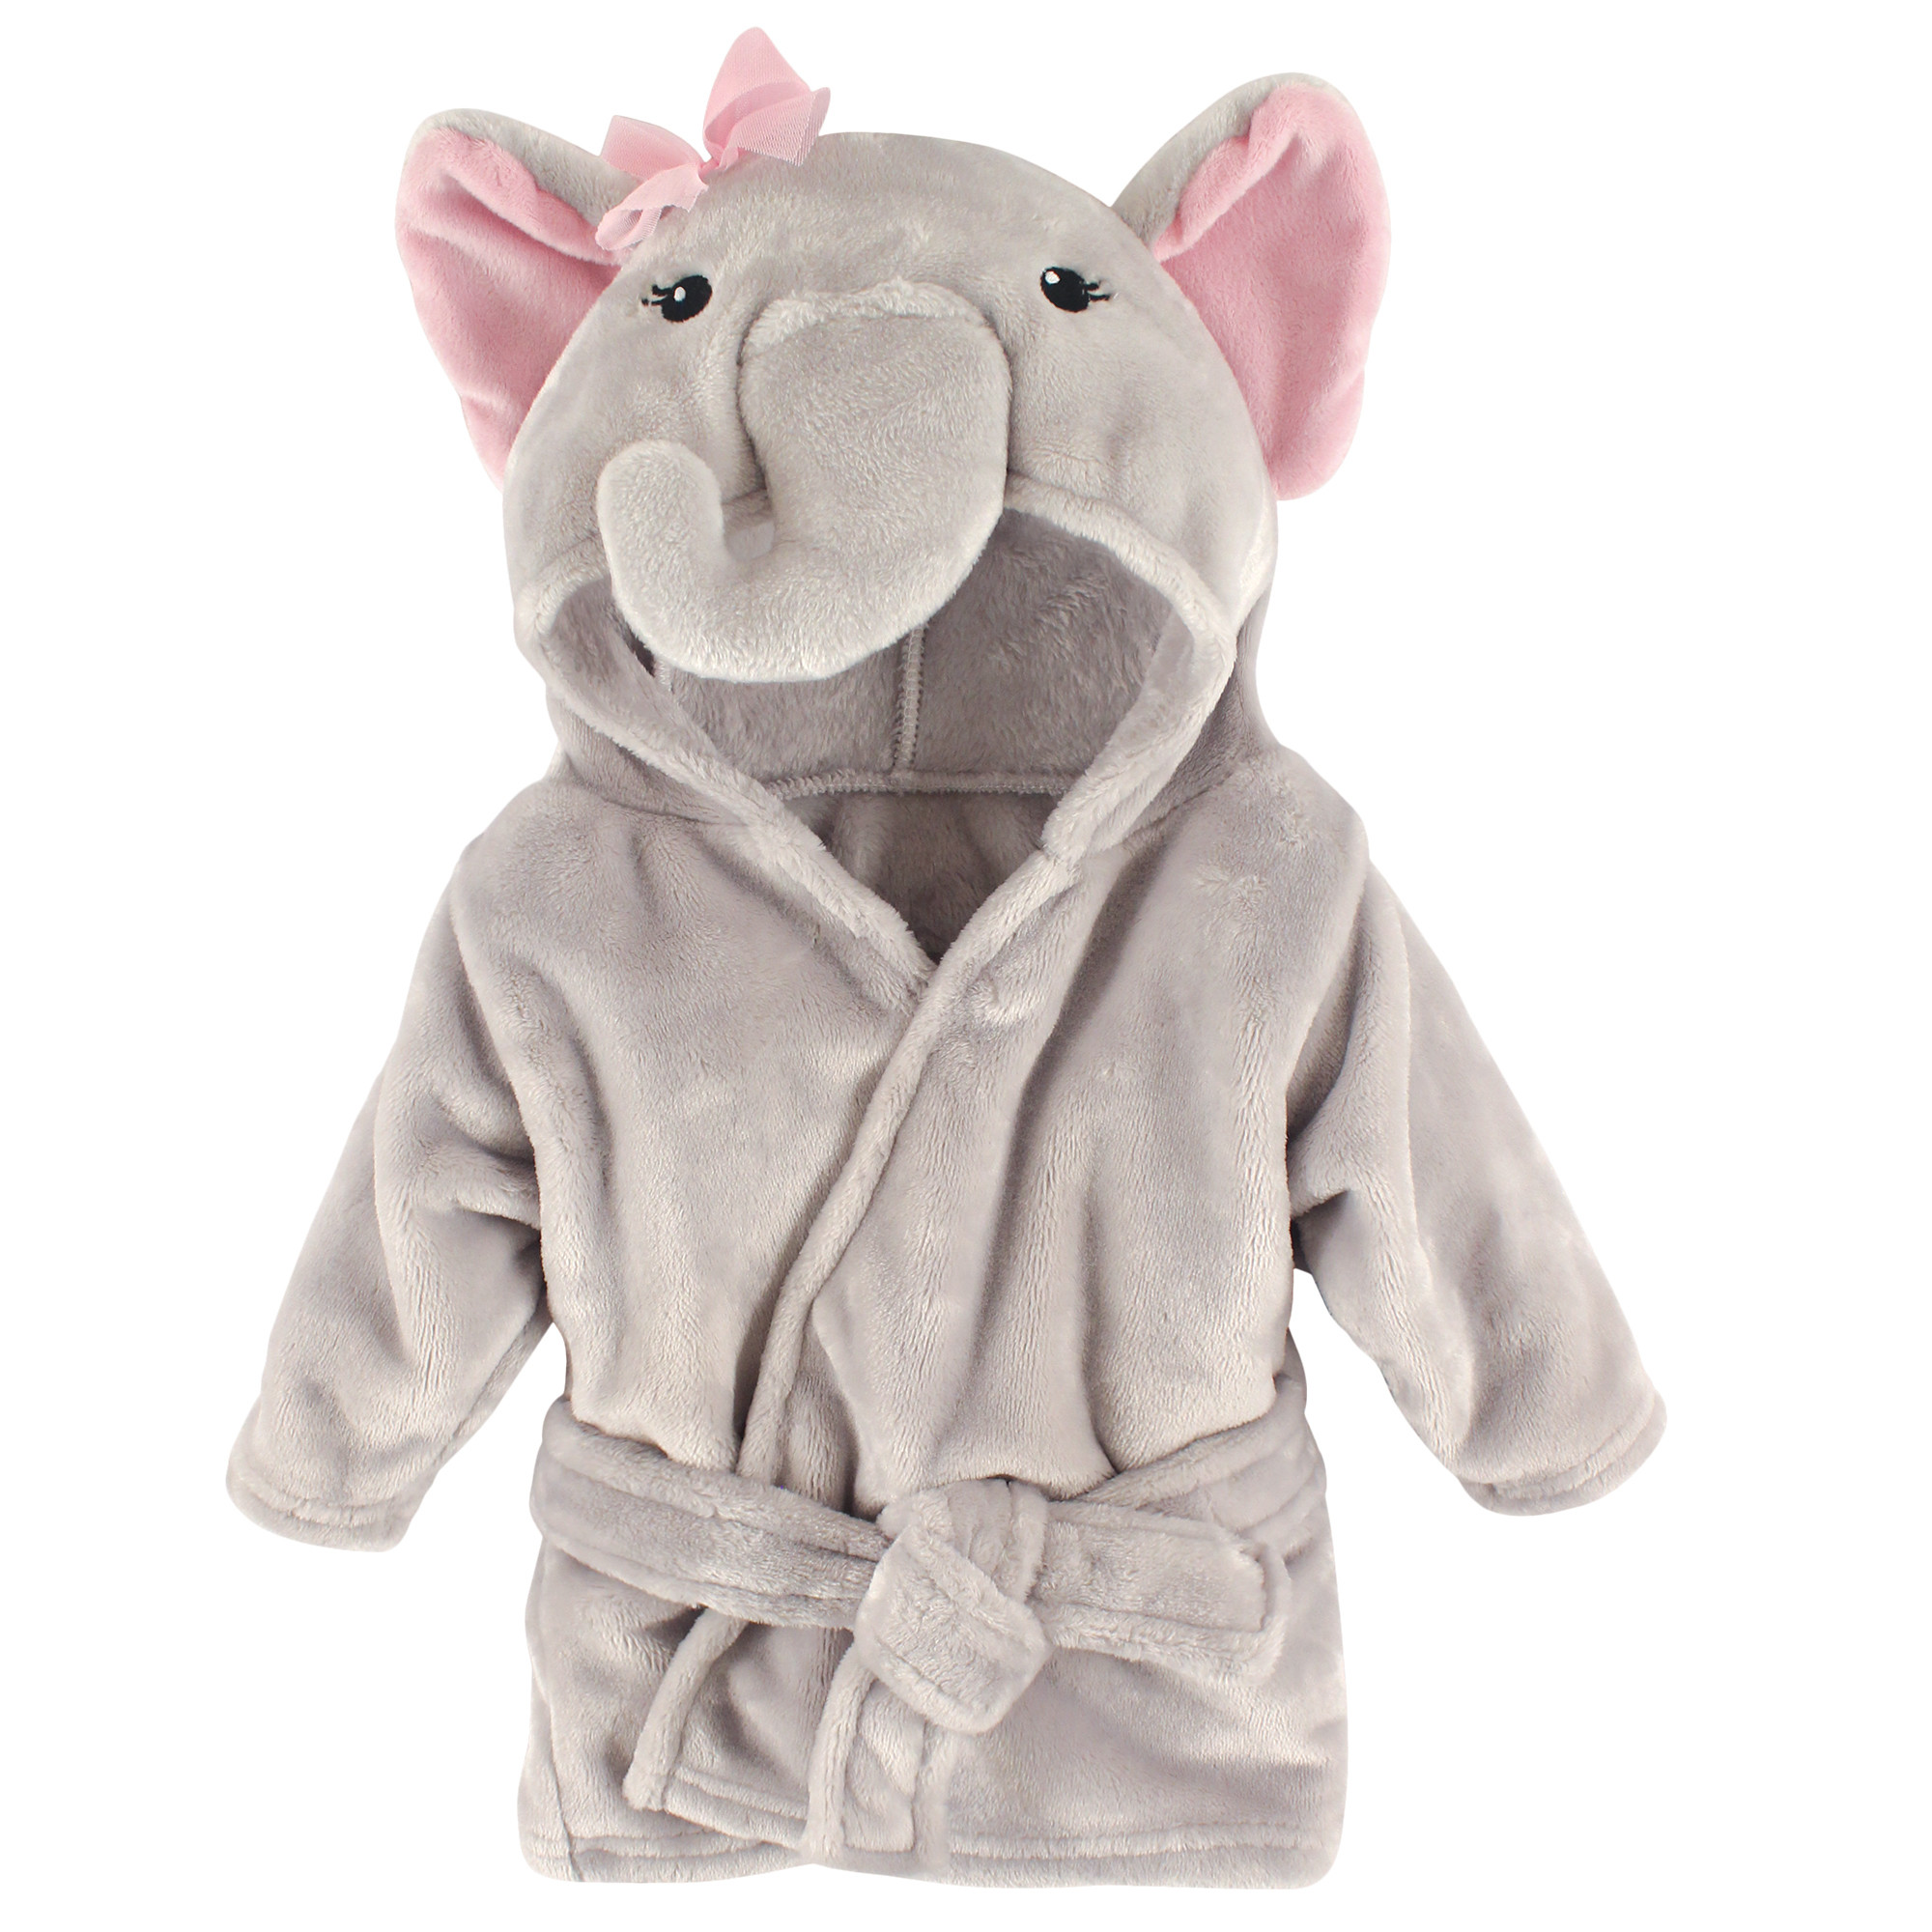 caa5d29792 Soft Plush Baby Bathrobe